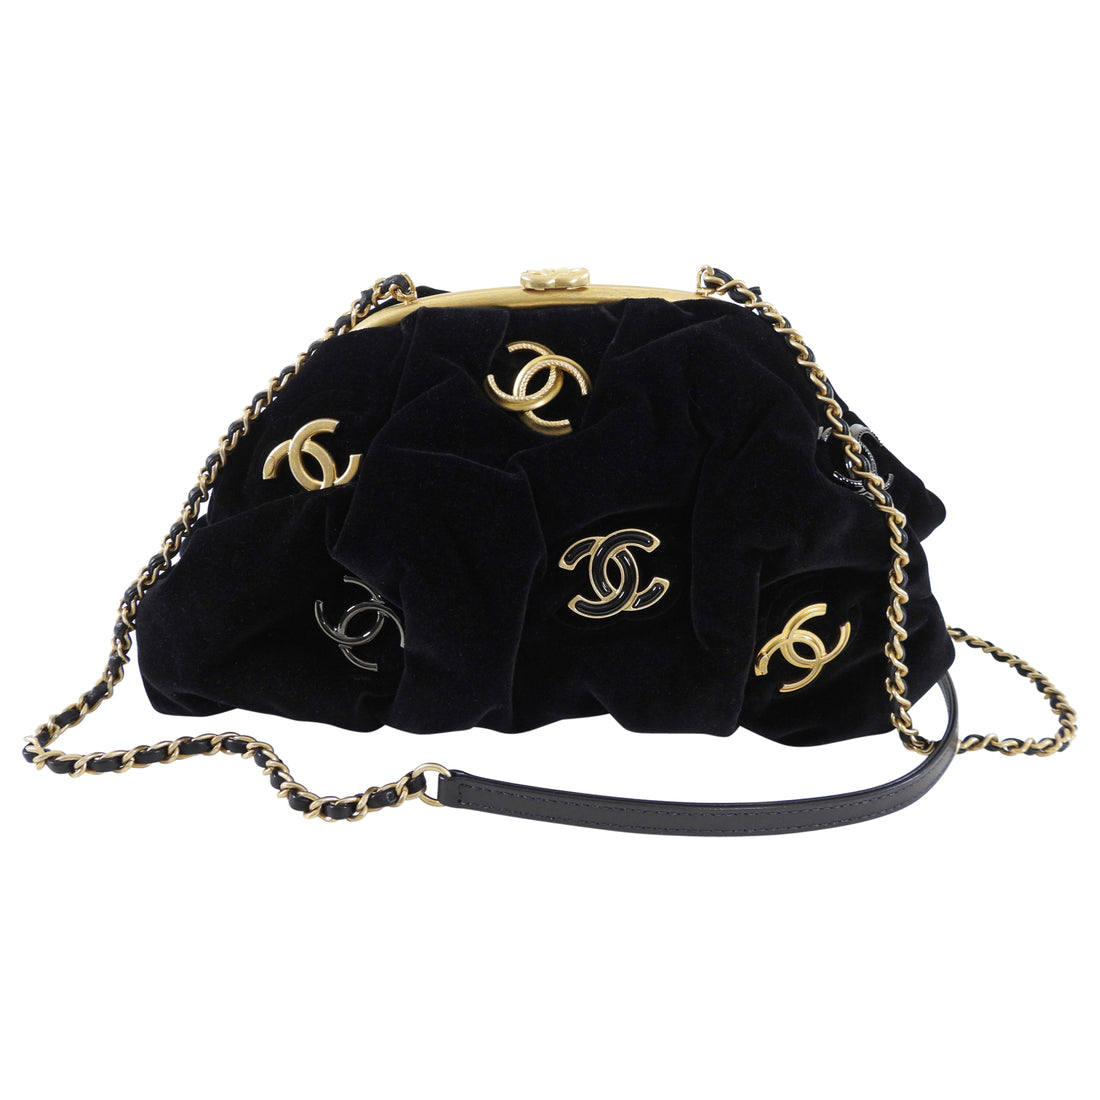 Chanel Black Velvet CC Shoulder Bag / Pouch